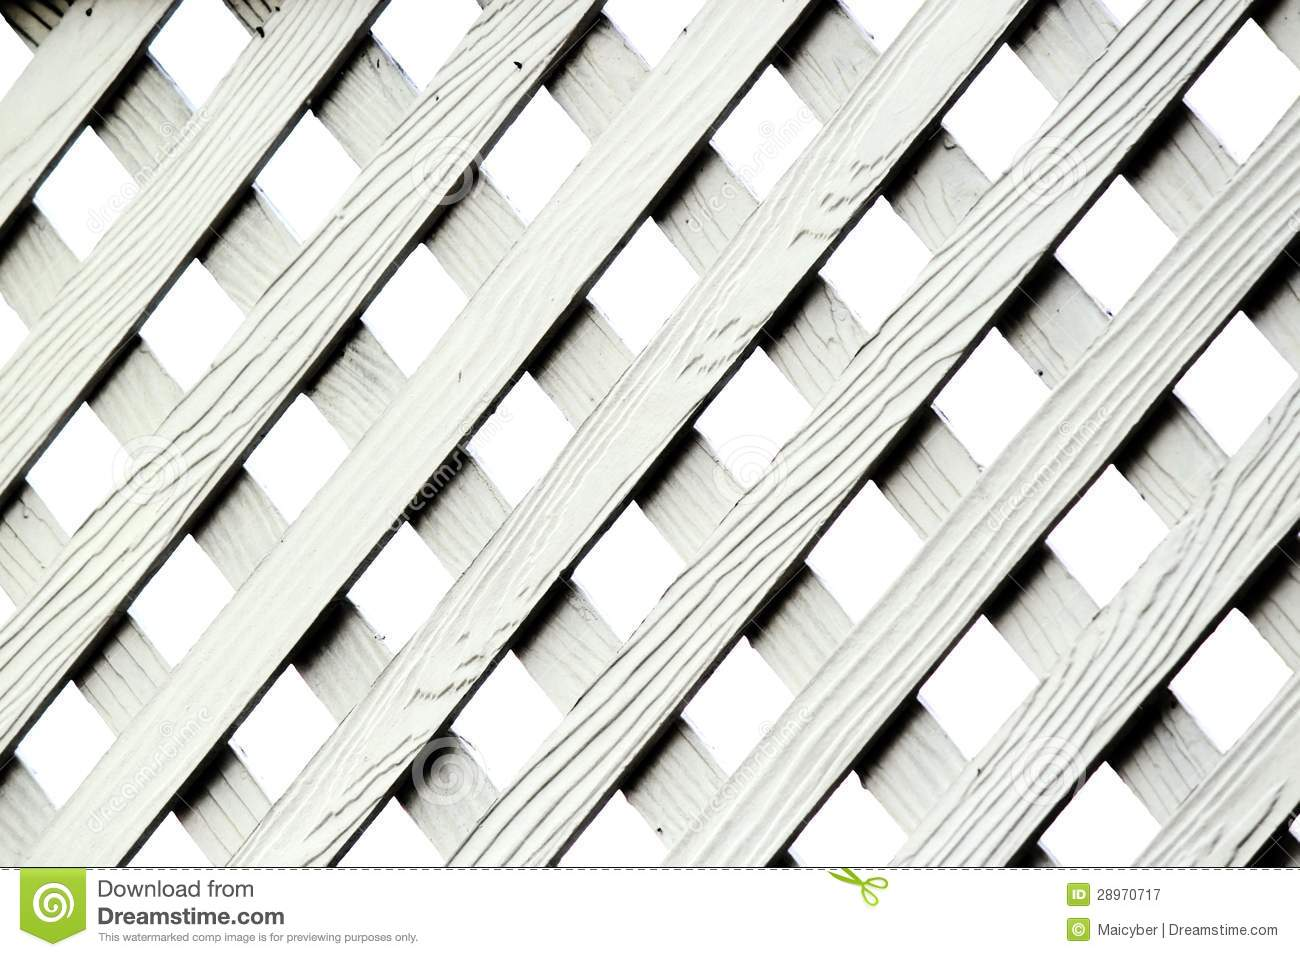 ... Free Stock Photography: Texture of Artificial Wood Lattice Fence